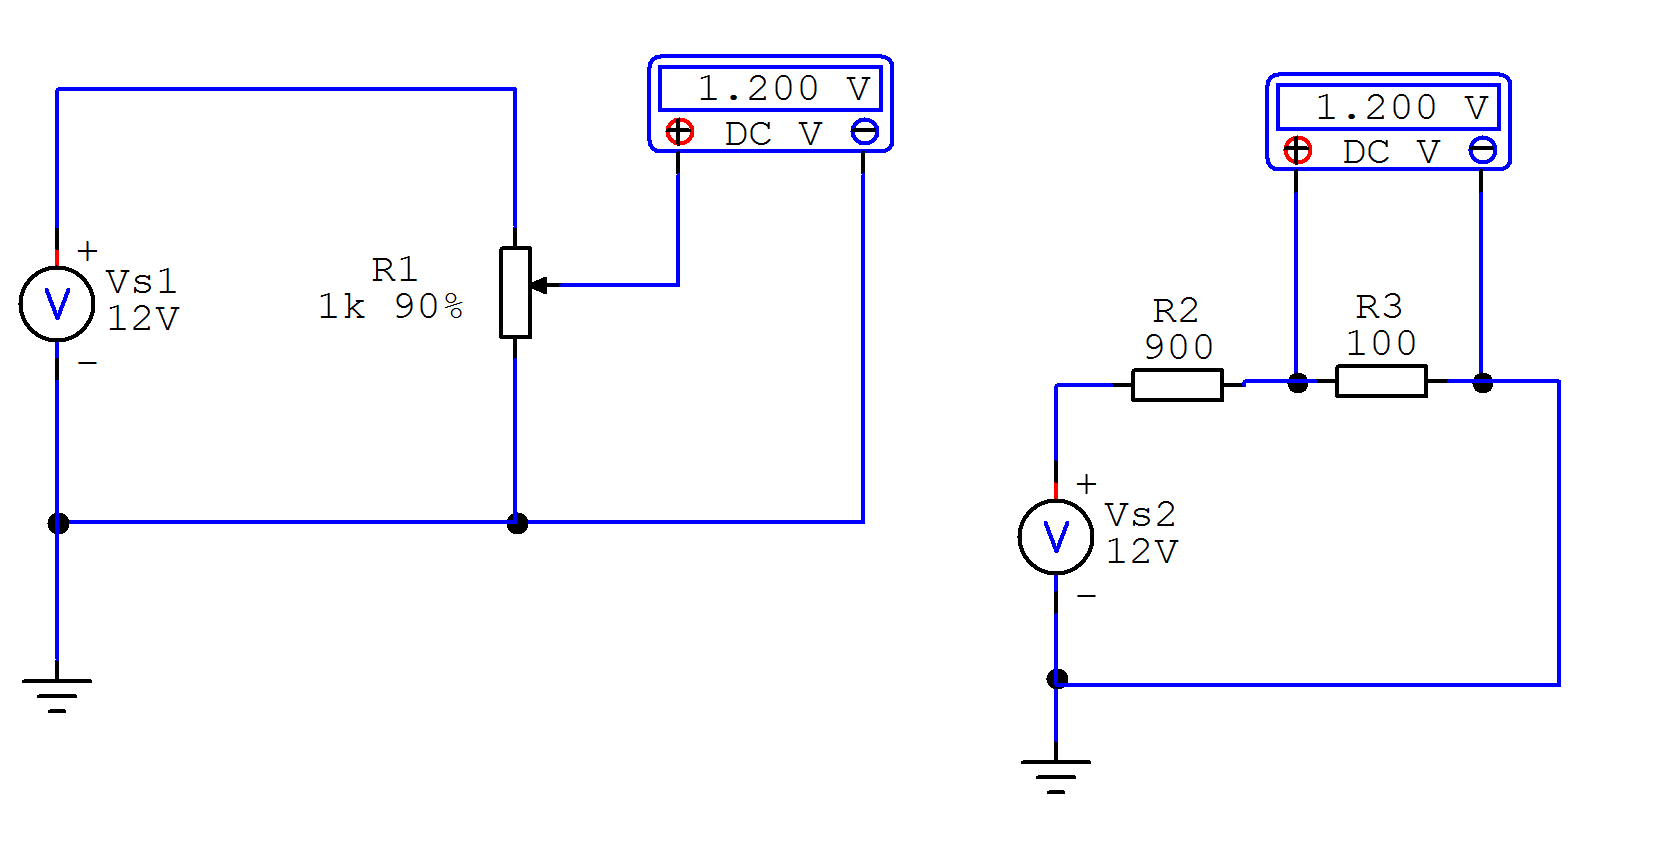 medium resolution of solved eagle 8 5 2 potentiometer simulation does not work displaying 17 gallery images for potentiometer schematic symbol